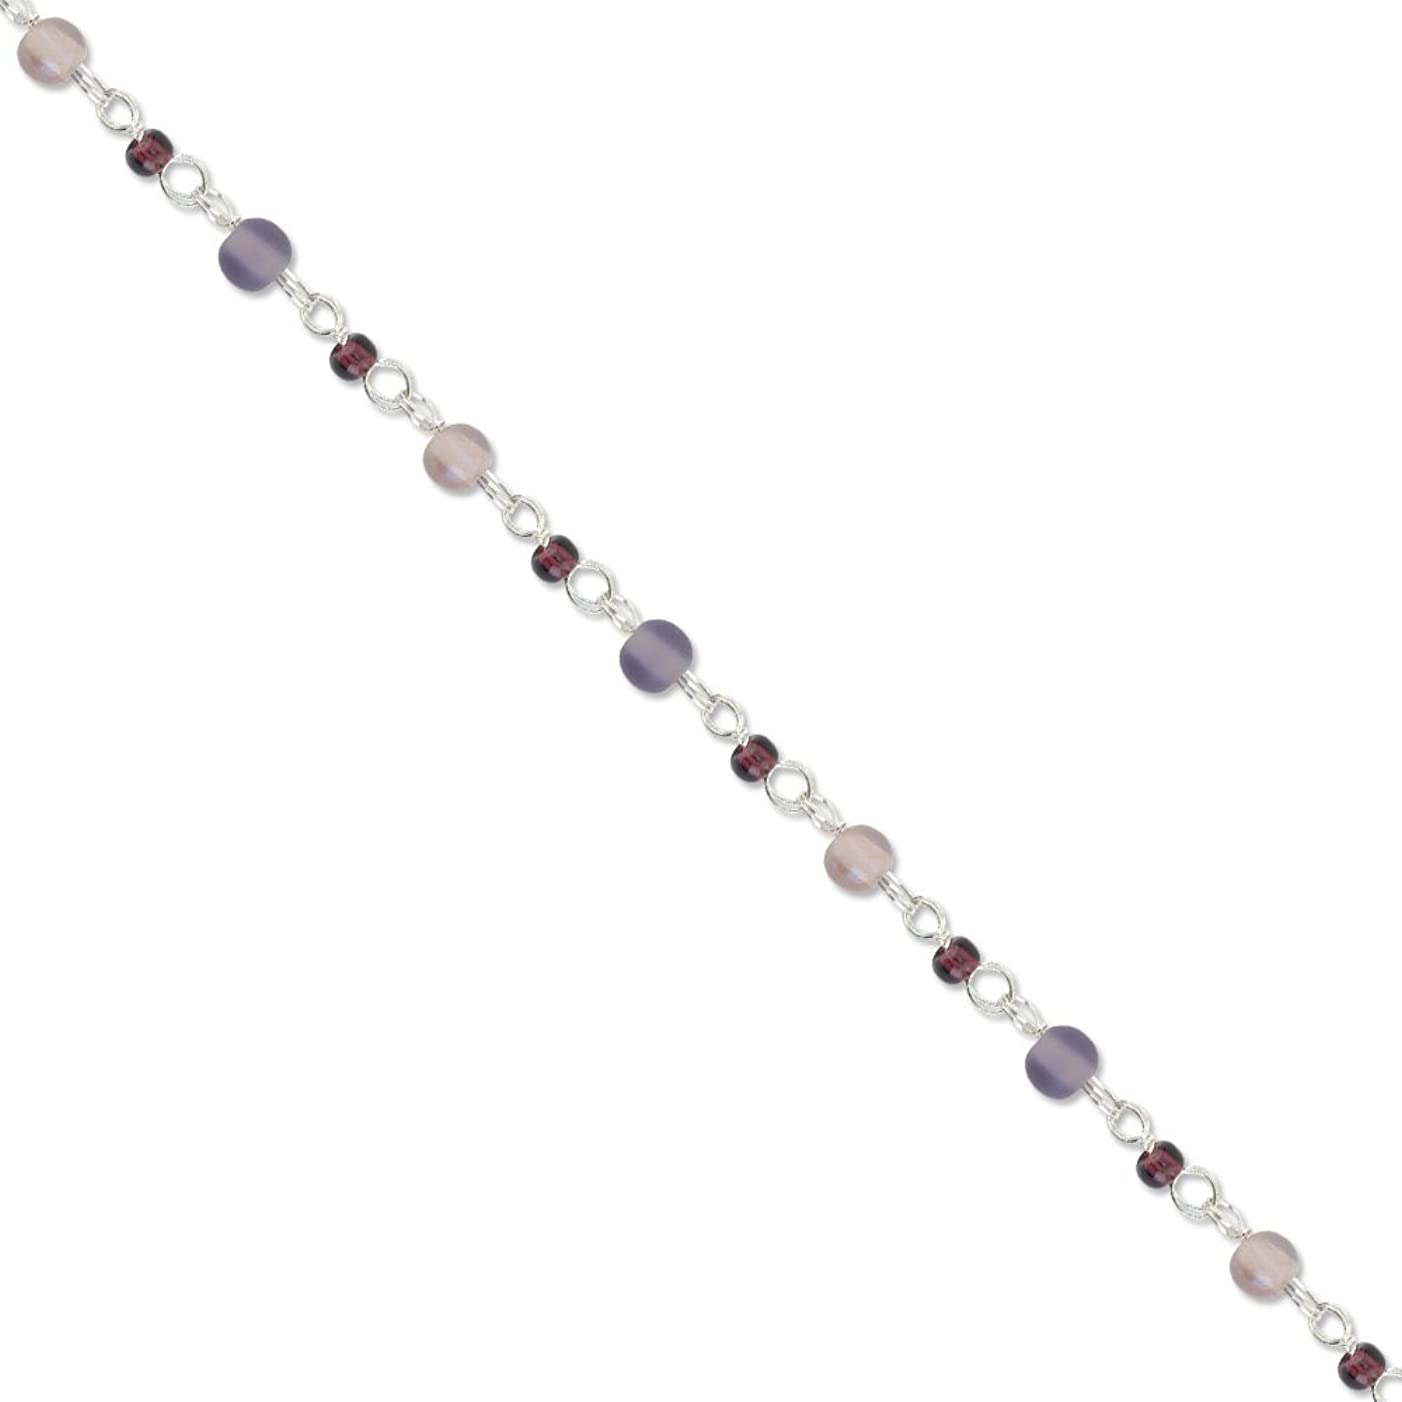 Artistic Wire Beadalon Chain Glass Bead Purple White Plated, 1-1/2-Meters